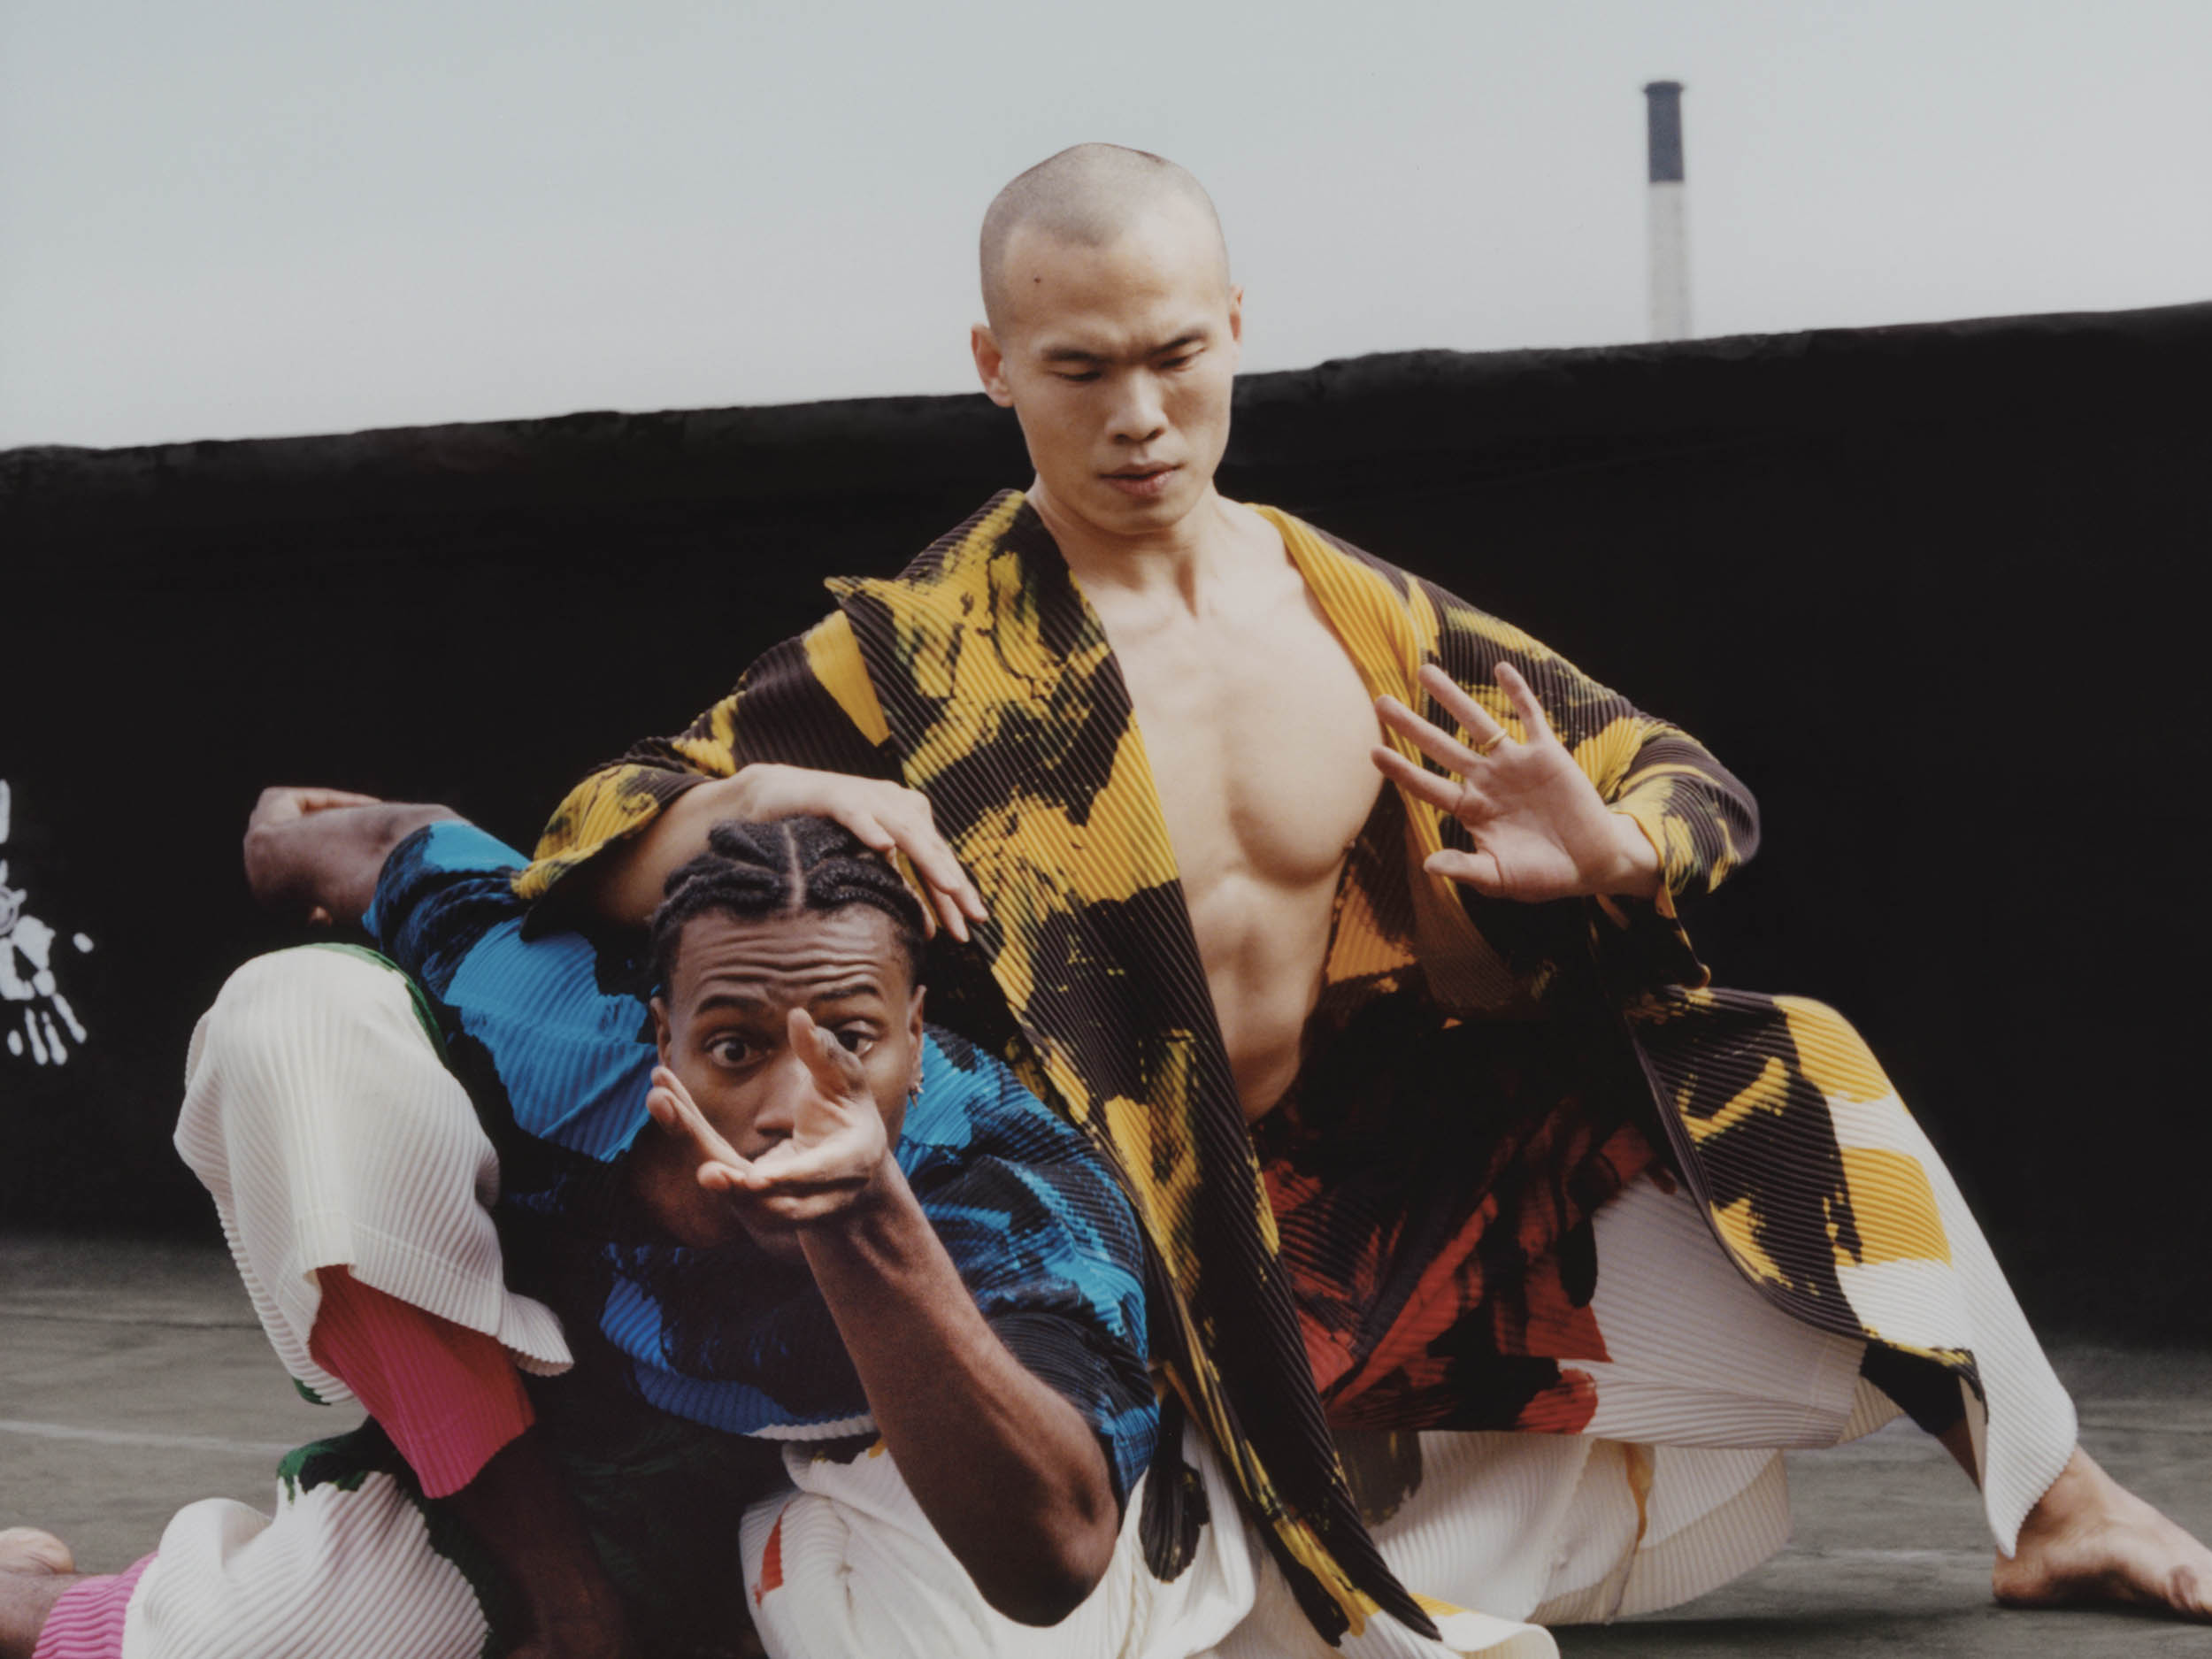 The new wave of modern movement according to Bill T. Jones, Kyle Abraham, and Rashaun Mitchell + Silas Riener